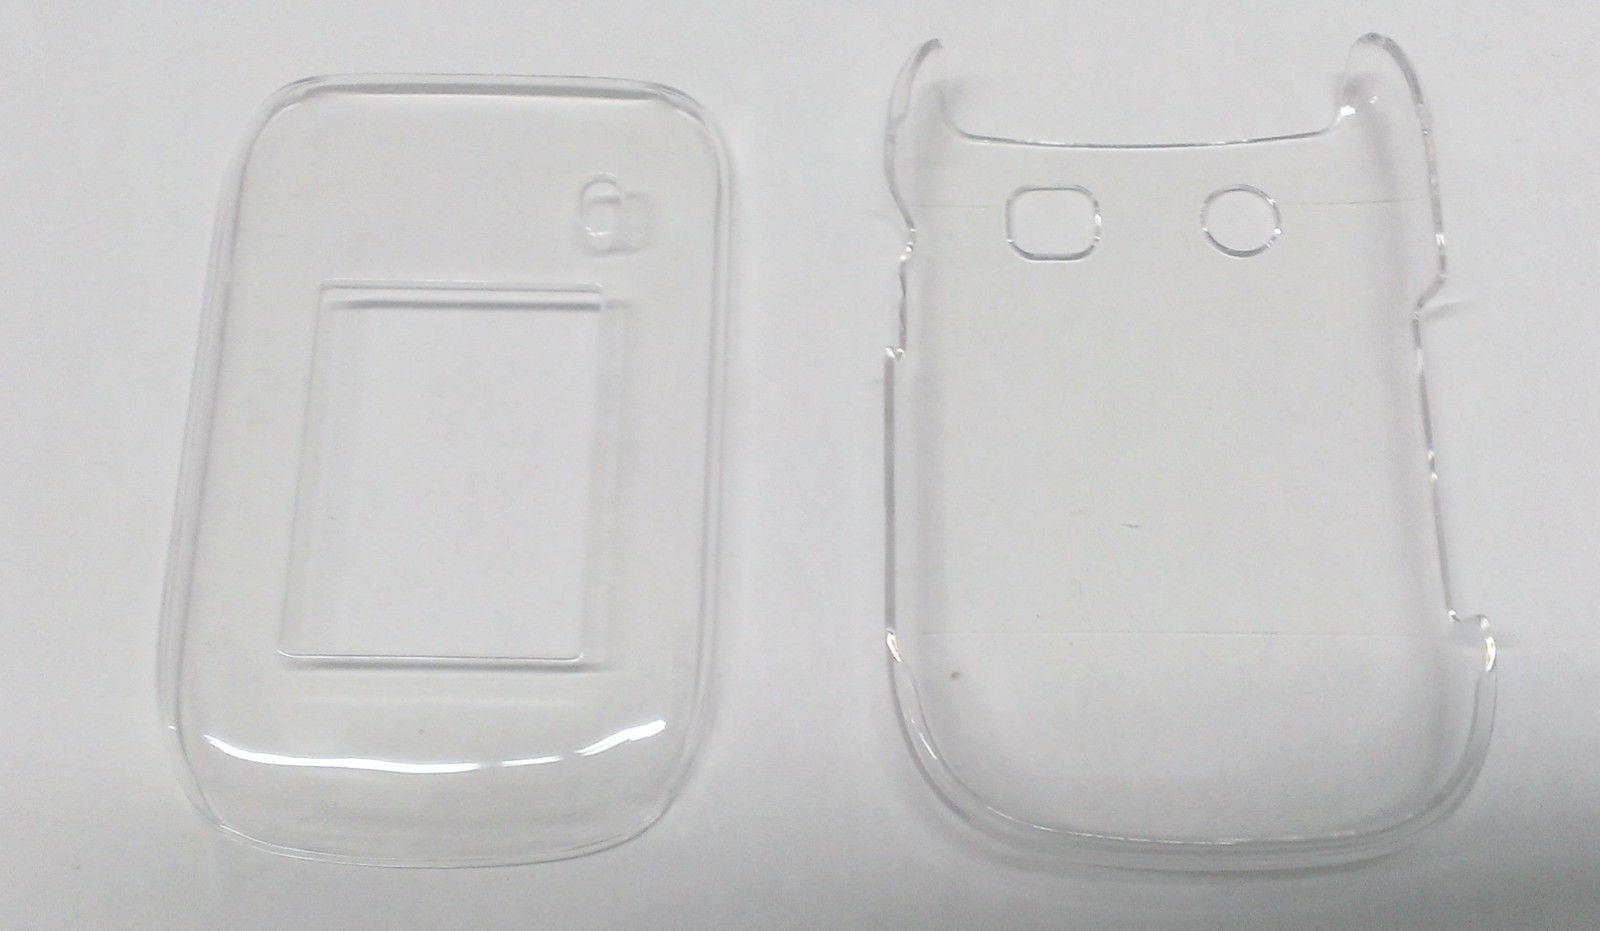 New Hard Shell Case Cover Clear for the Blackberry Style 9670